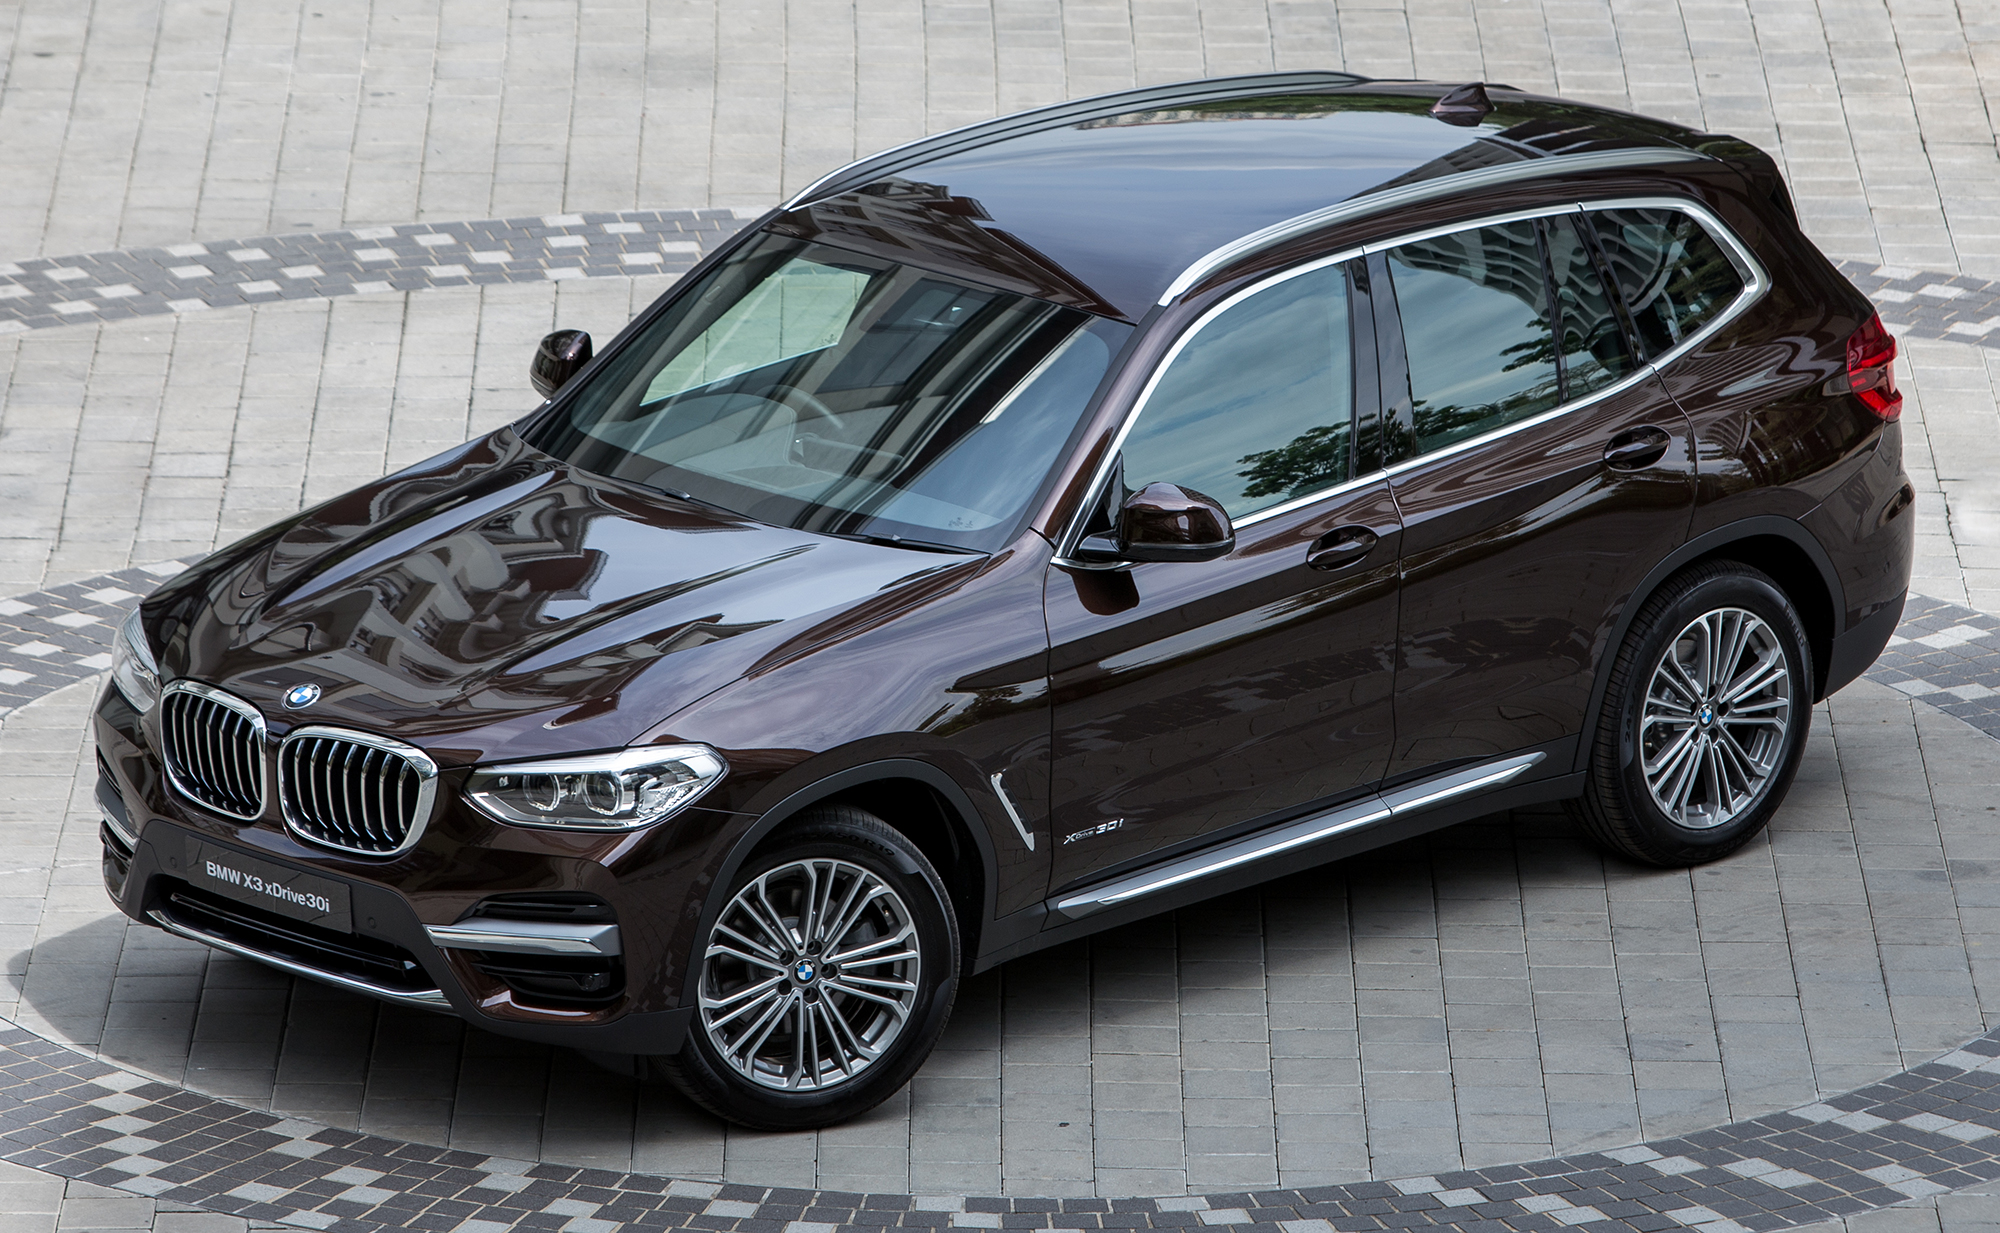 g01 bmw x3 launched in m sia 30i luxury rm314k paul tan. Black Bedroom Furniture Sets. Home Design Ideas